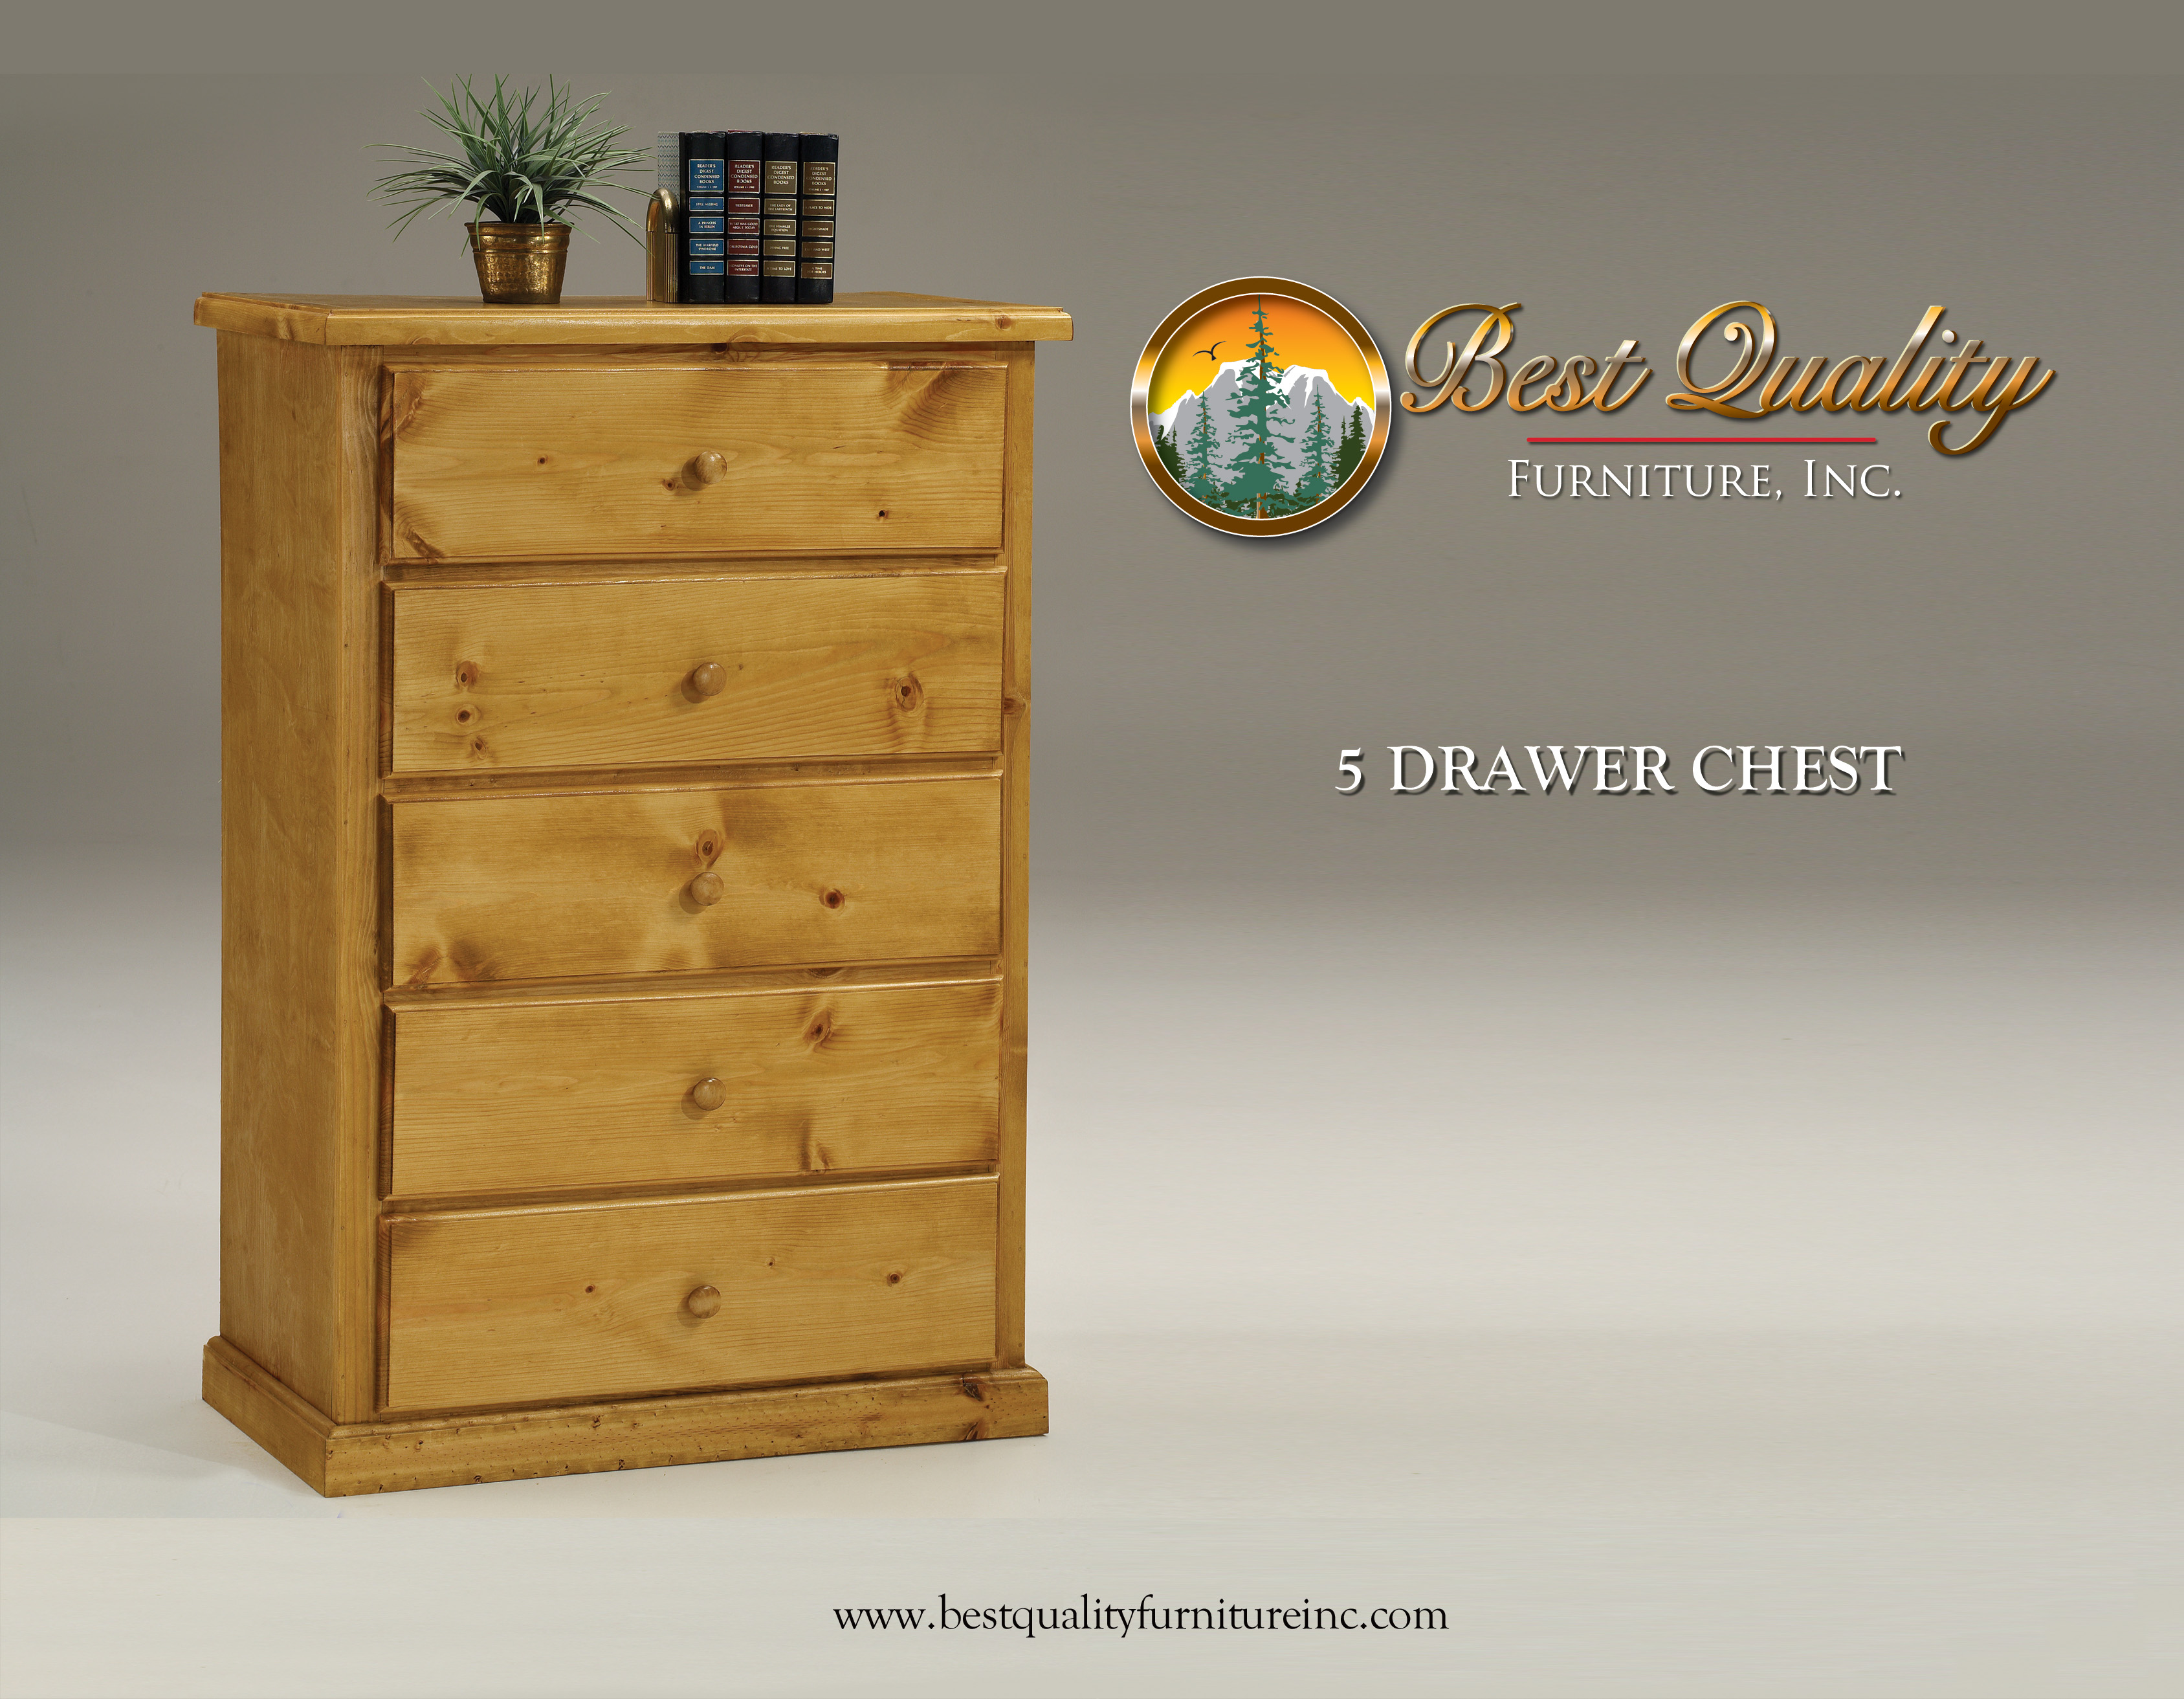 Best Quality Furniture